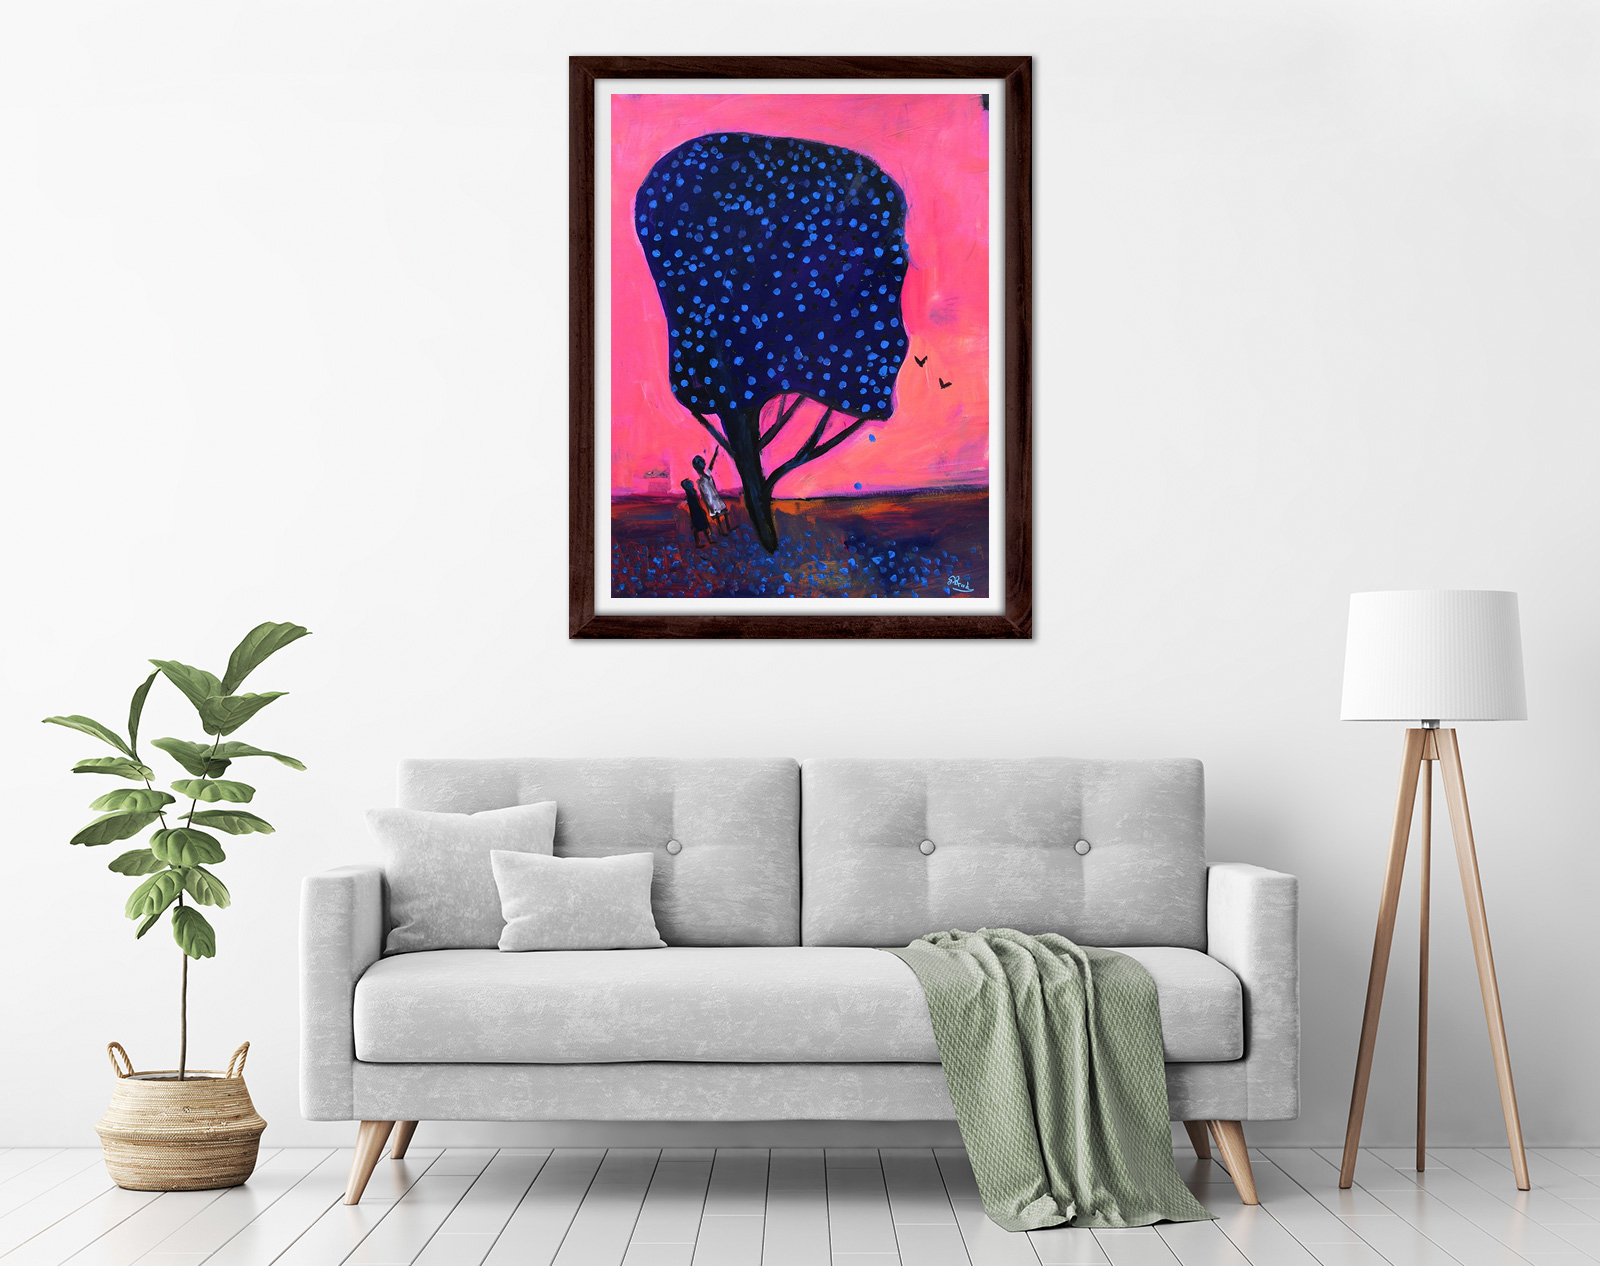 Glenn Brady - 'Girls with Blue Flower Tree' Framed in a room